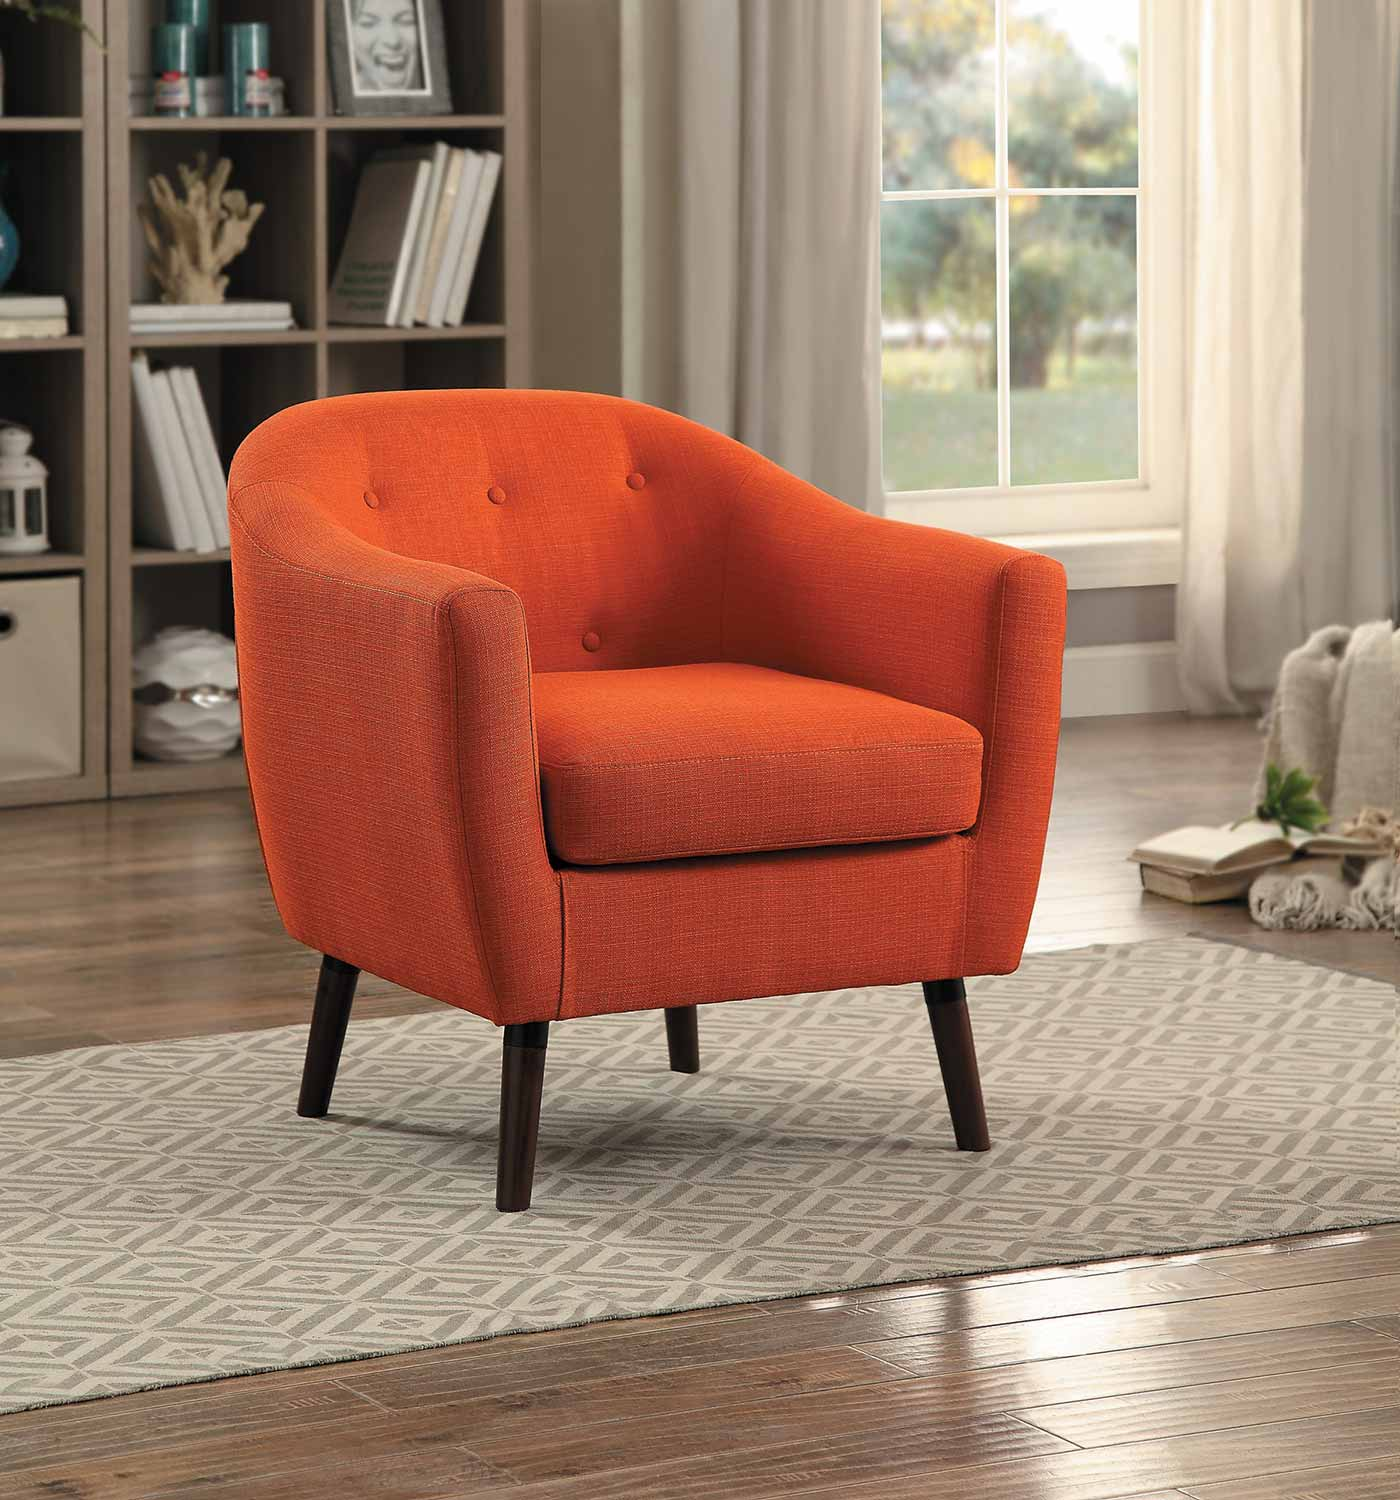 Homelegance Lucille Accent Chair - Orange